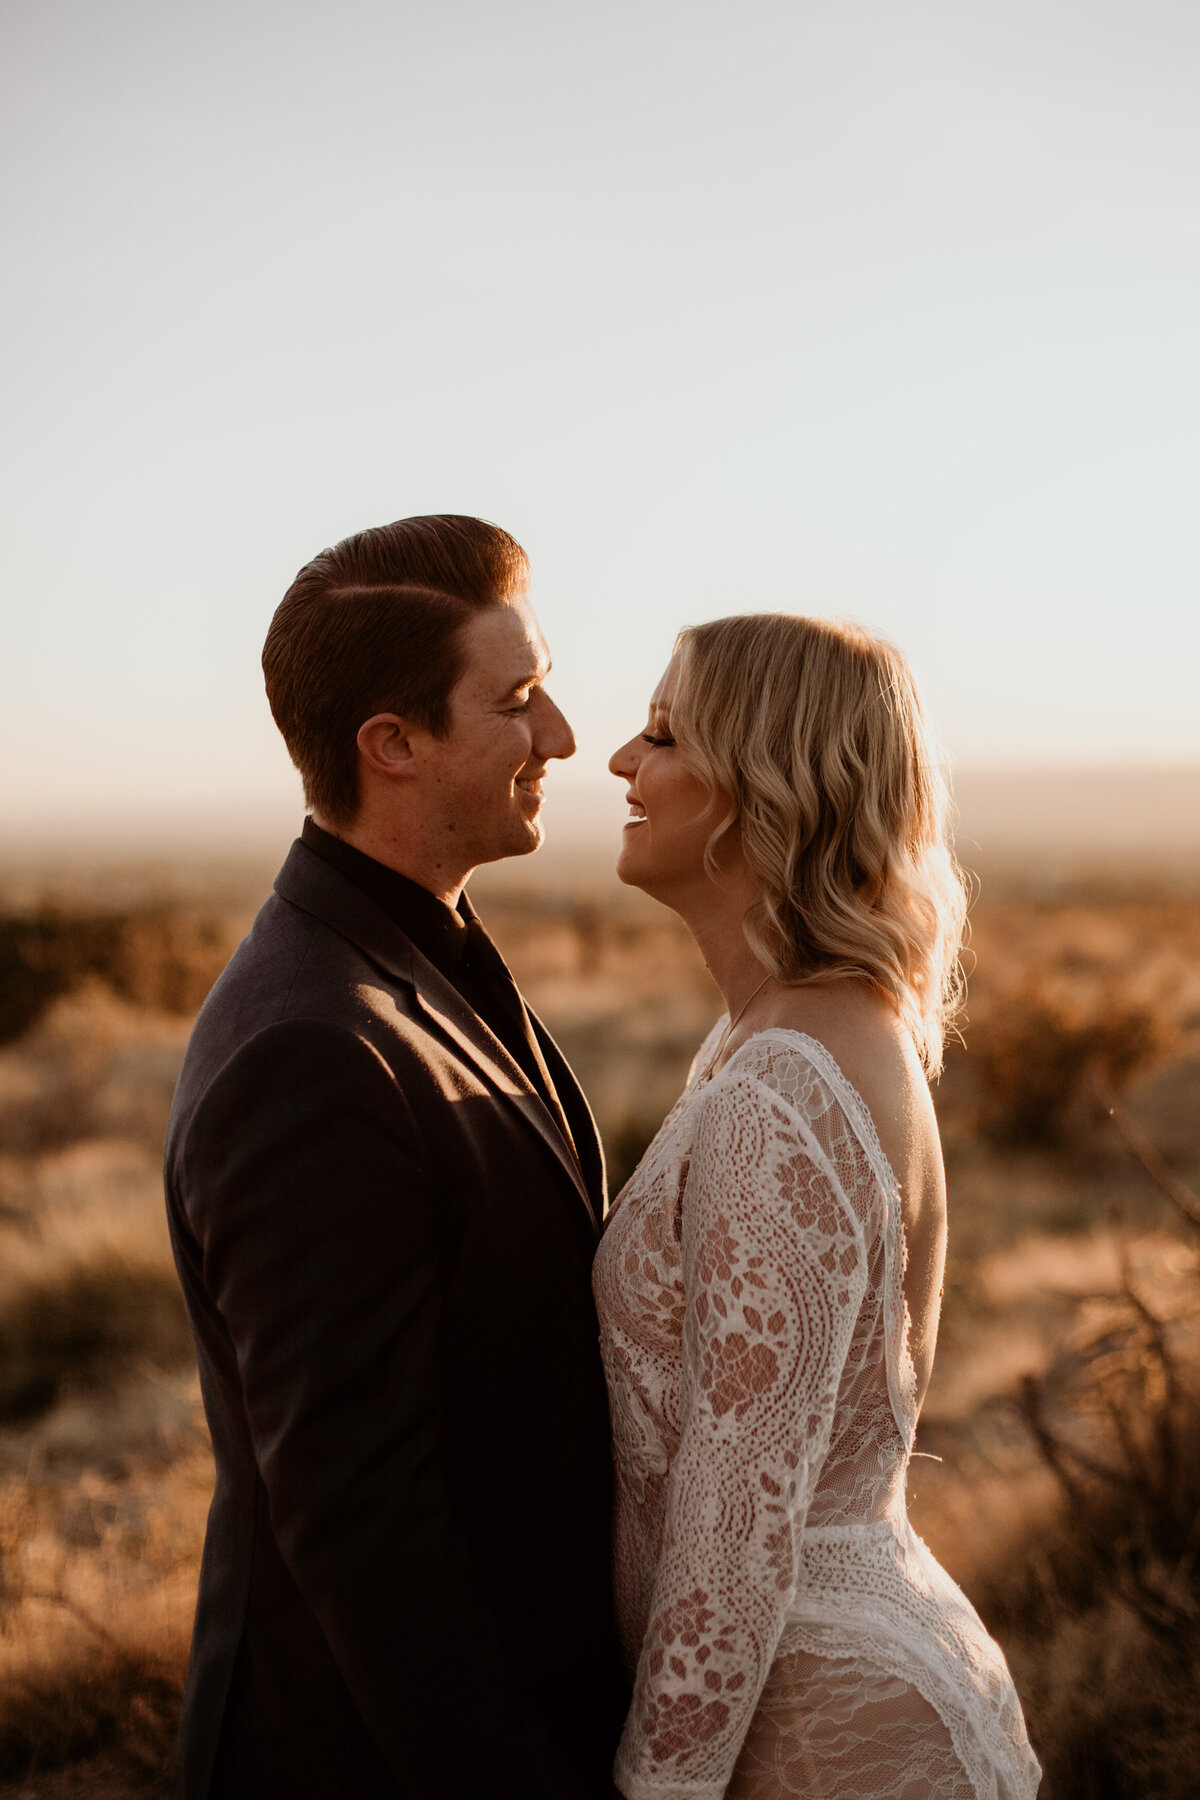 husband and wife looking at each other at sunset